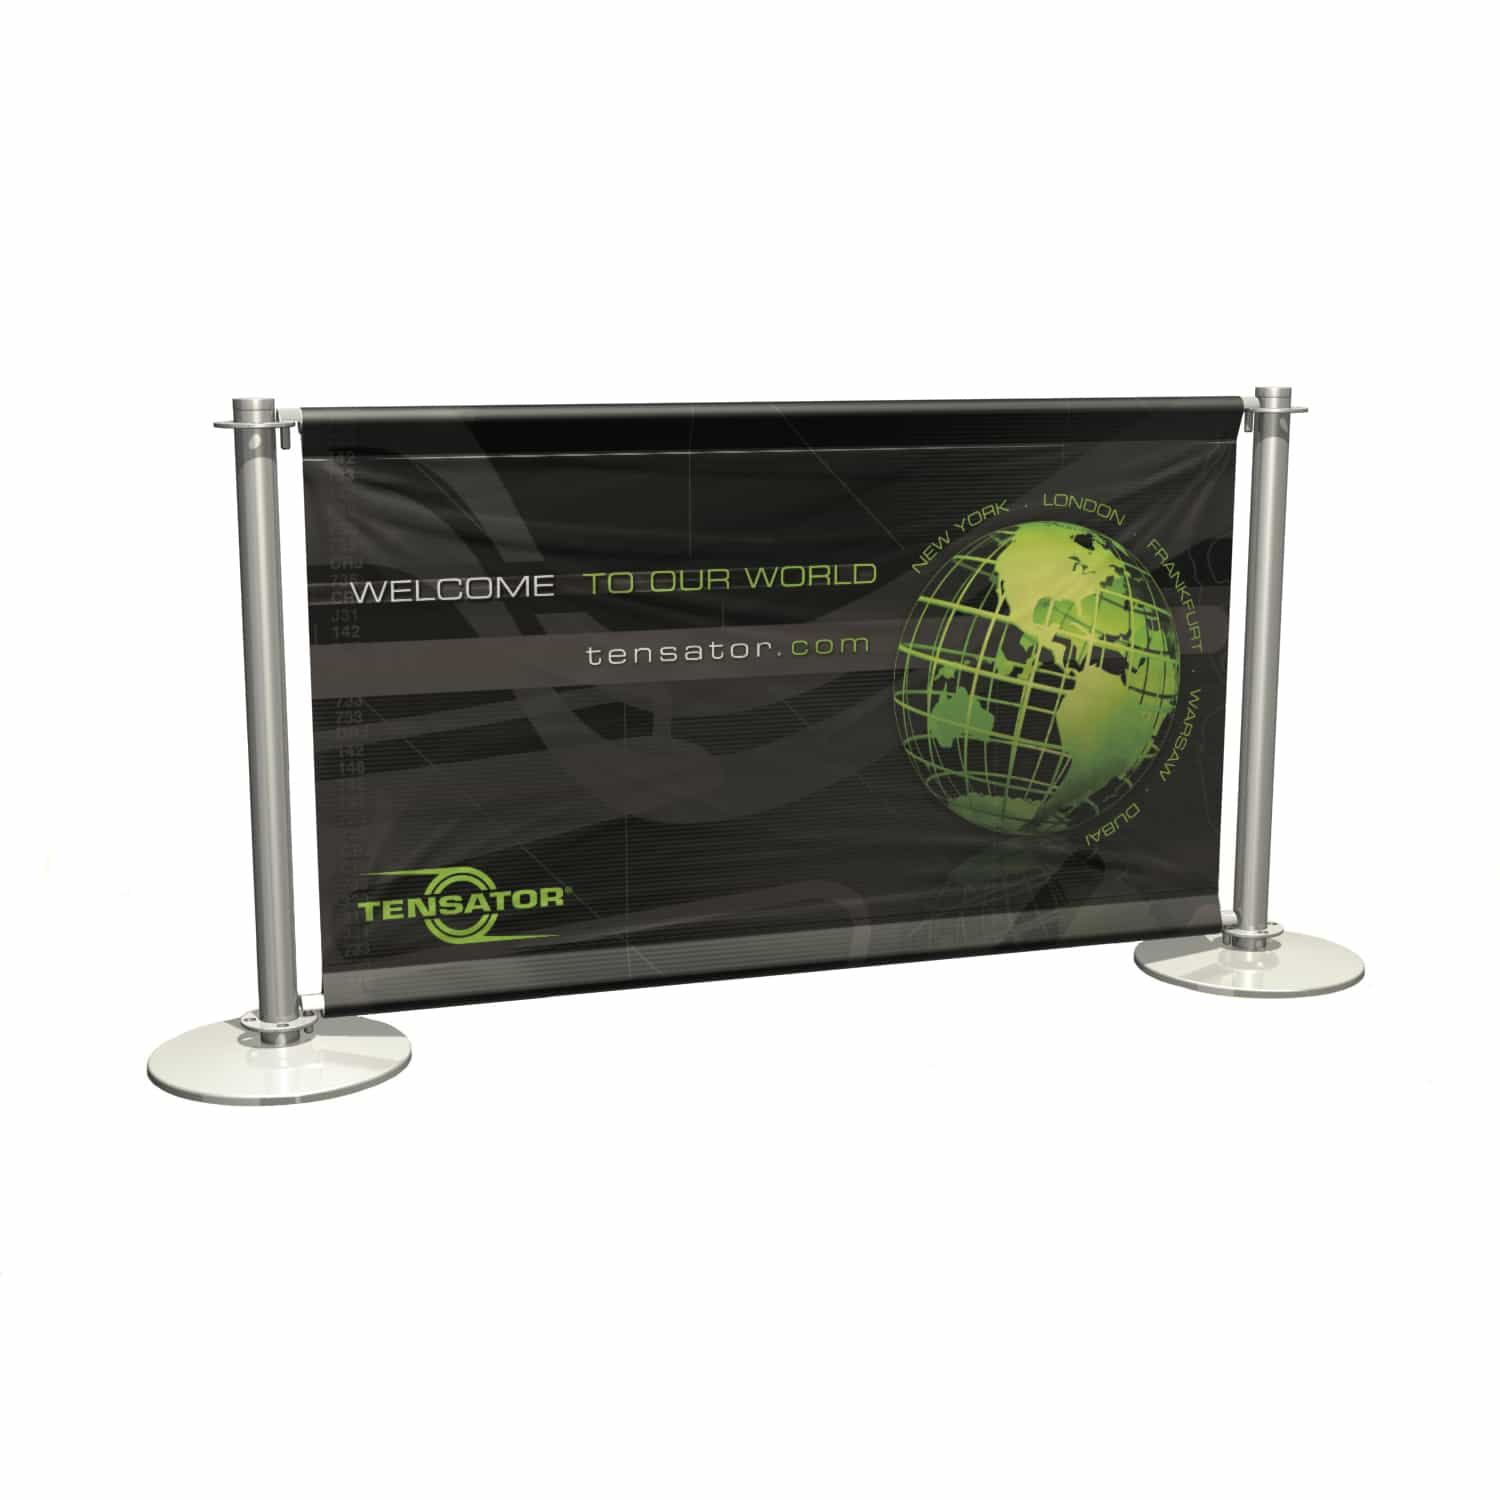 cafe-banner-stainless-steel